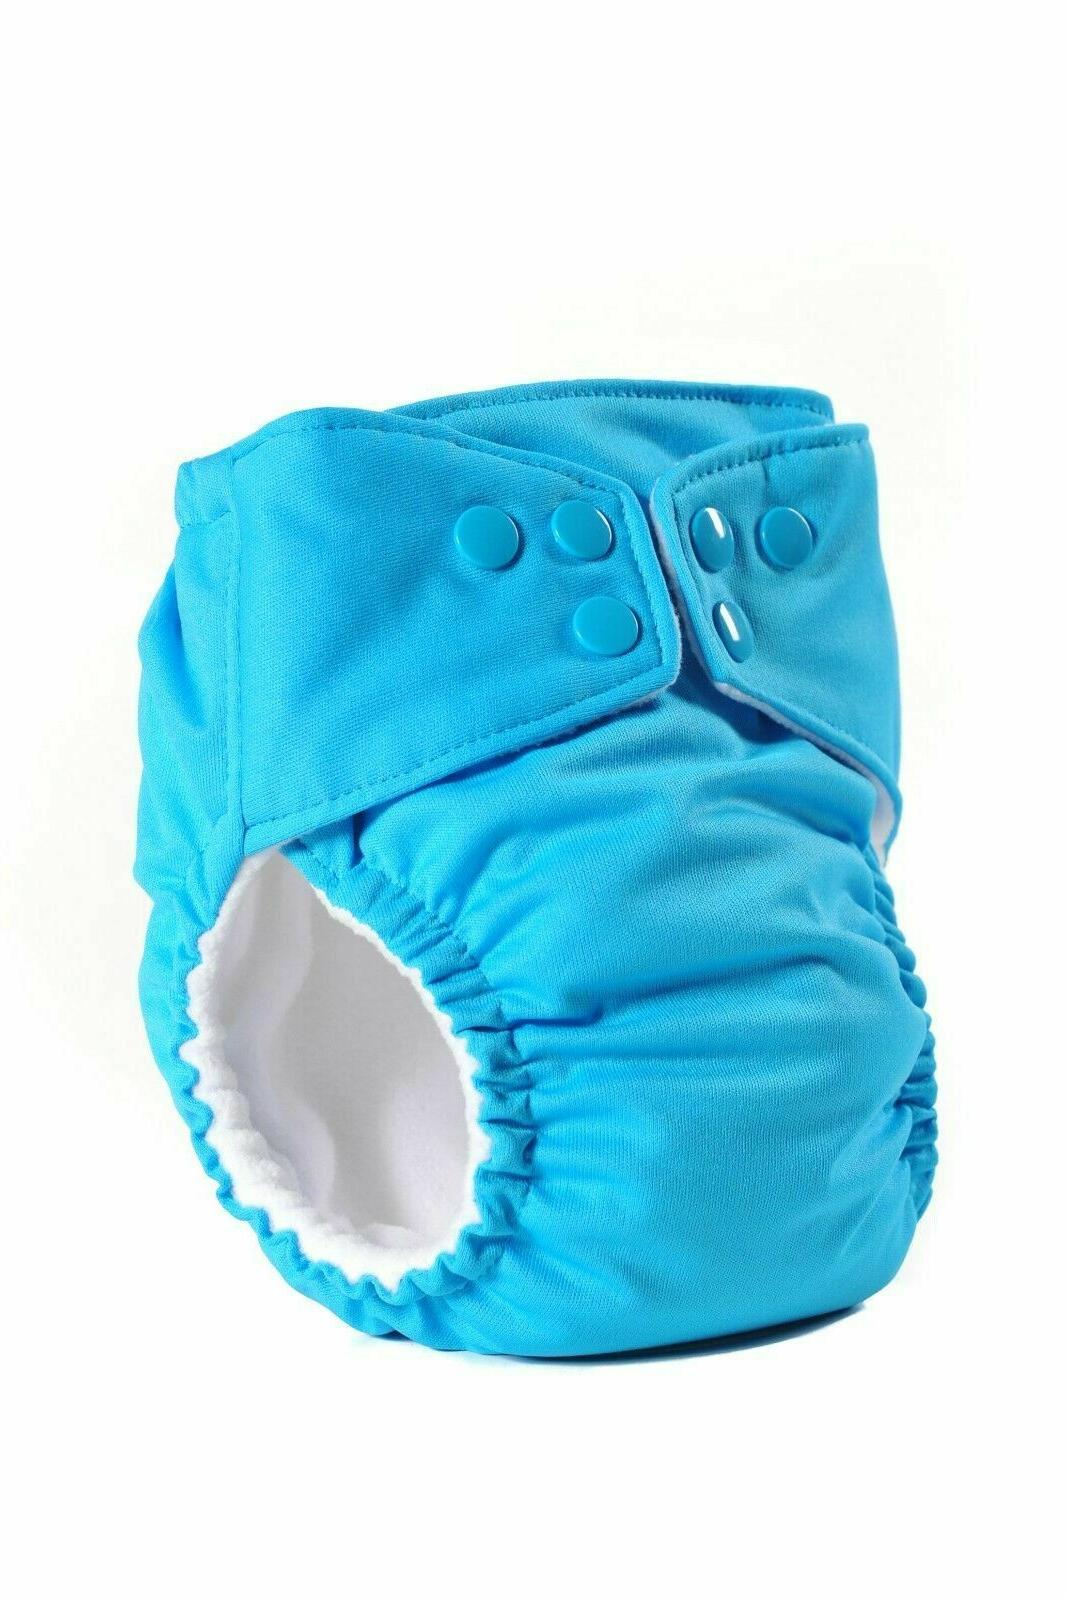 6 cloth diapers all in one reusable